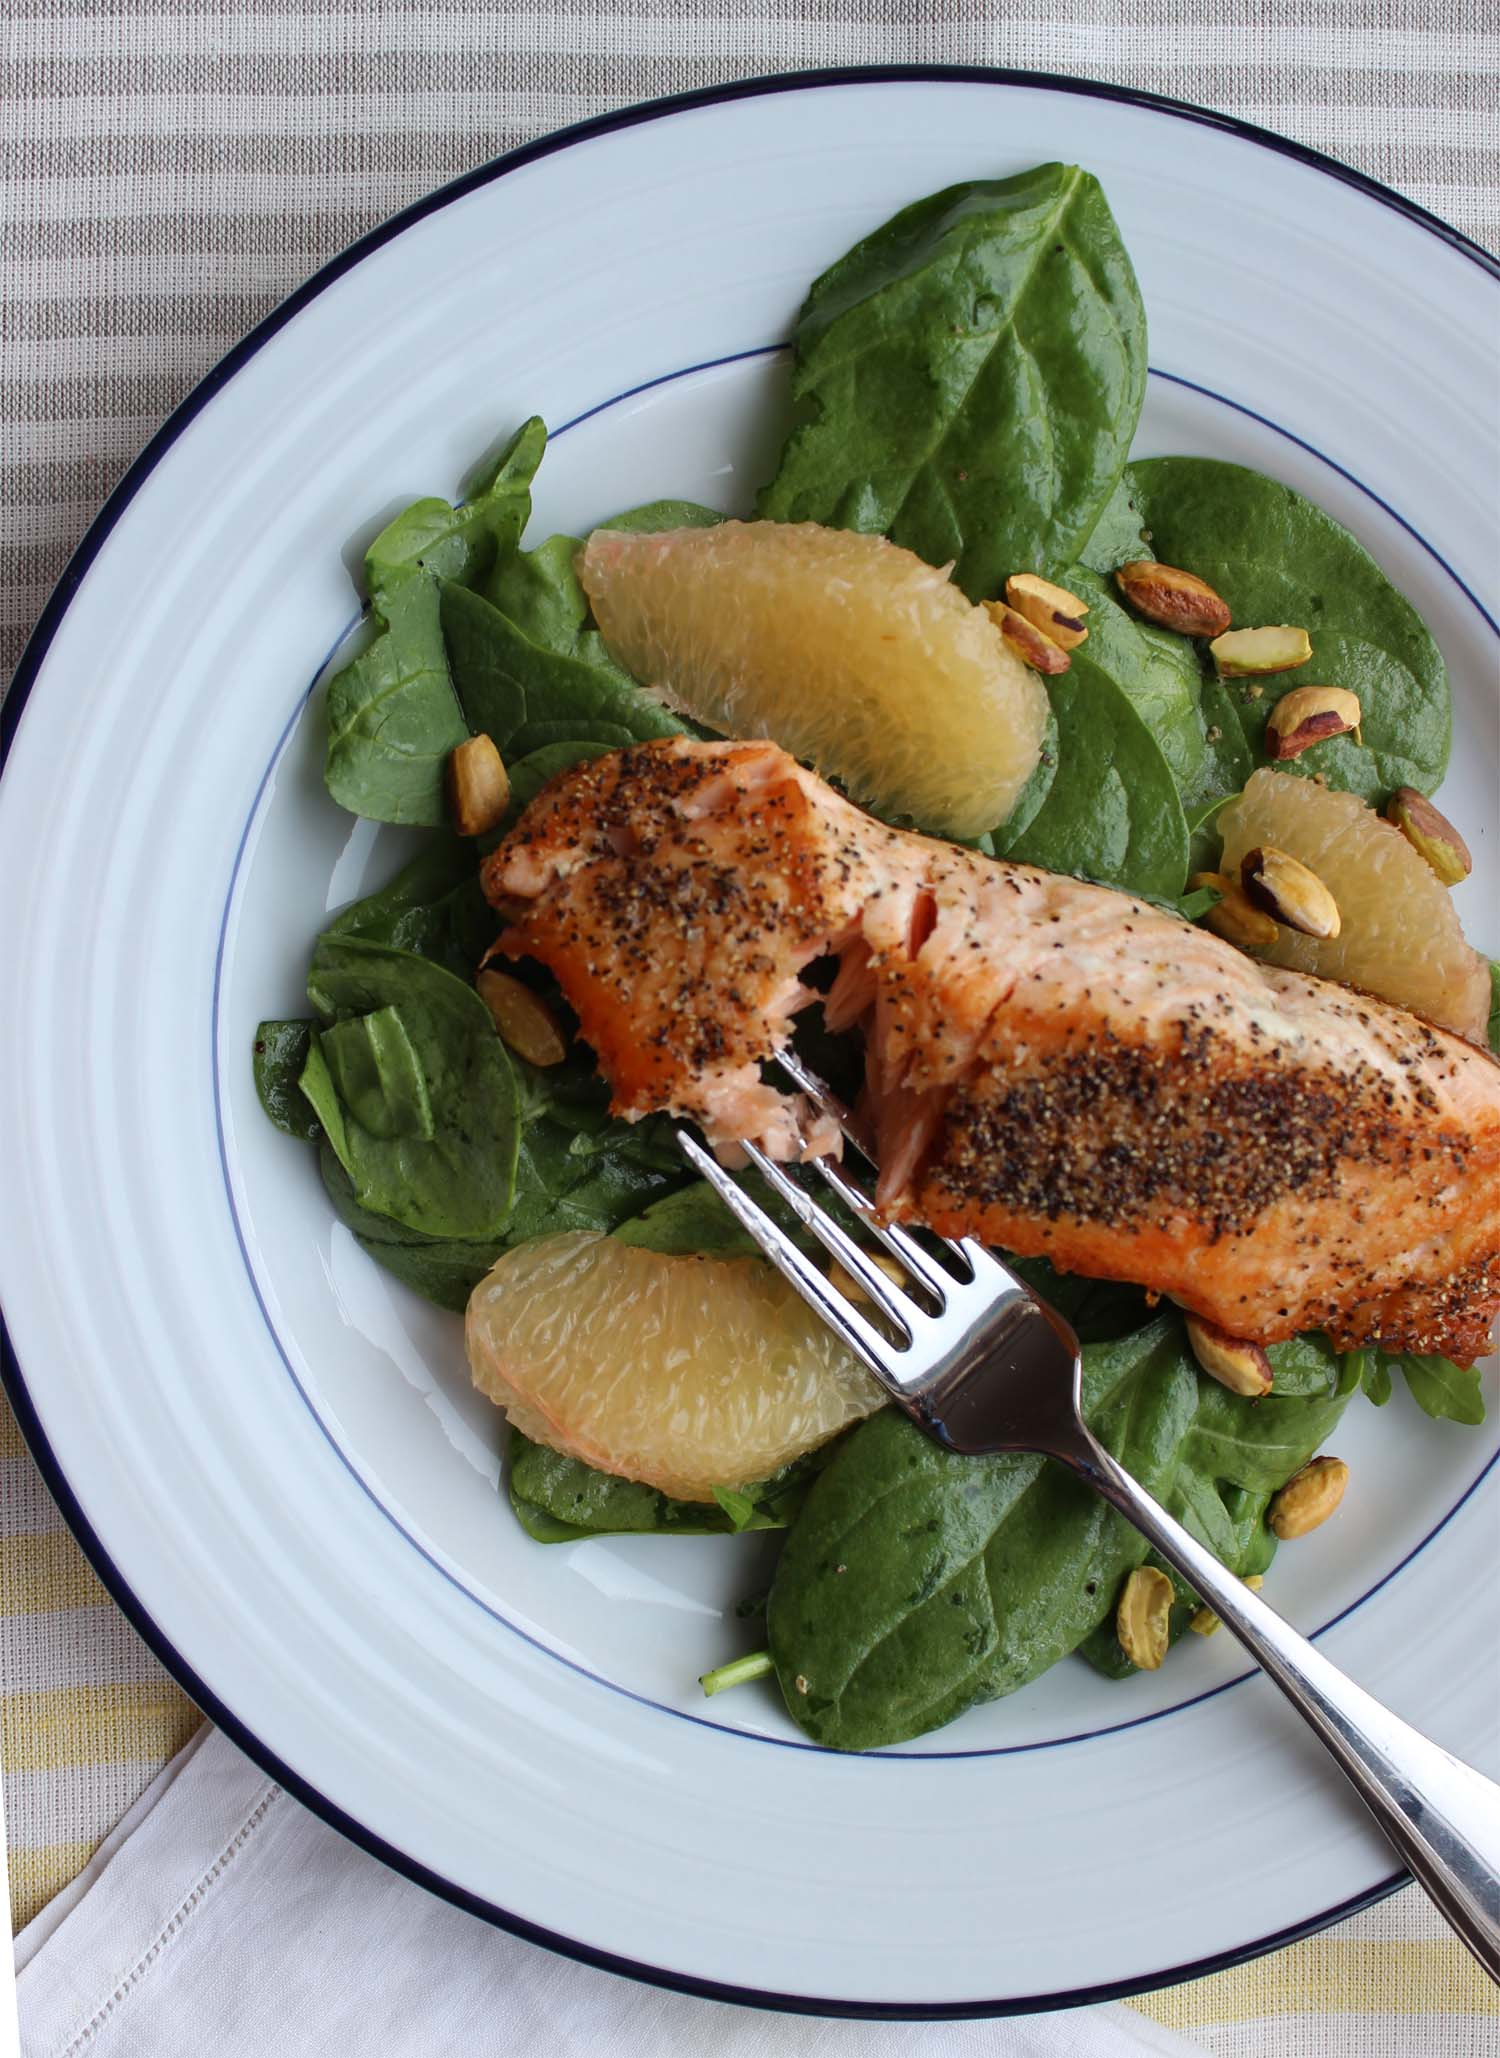 Pan-Fried Salmon with Grapefruit, Pistachio and Spinach Salad   | Image:   Laura Messersmith